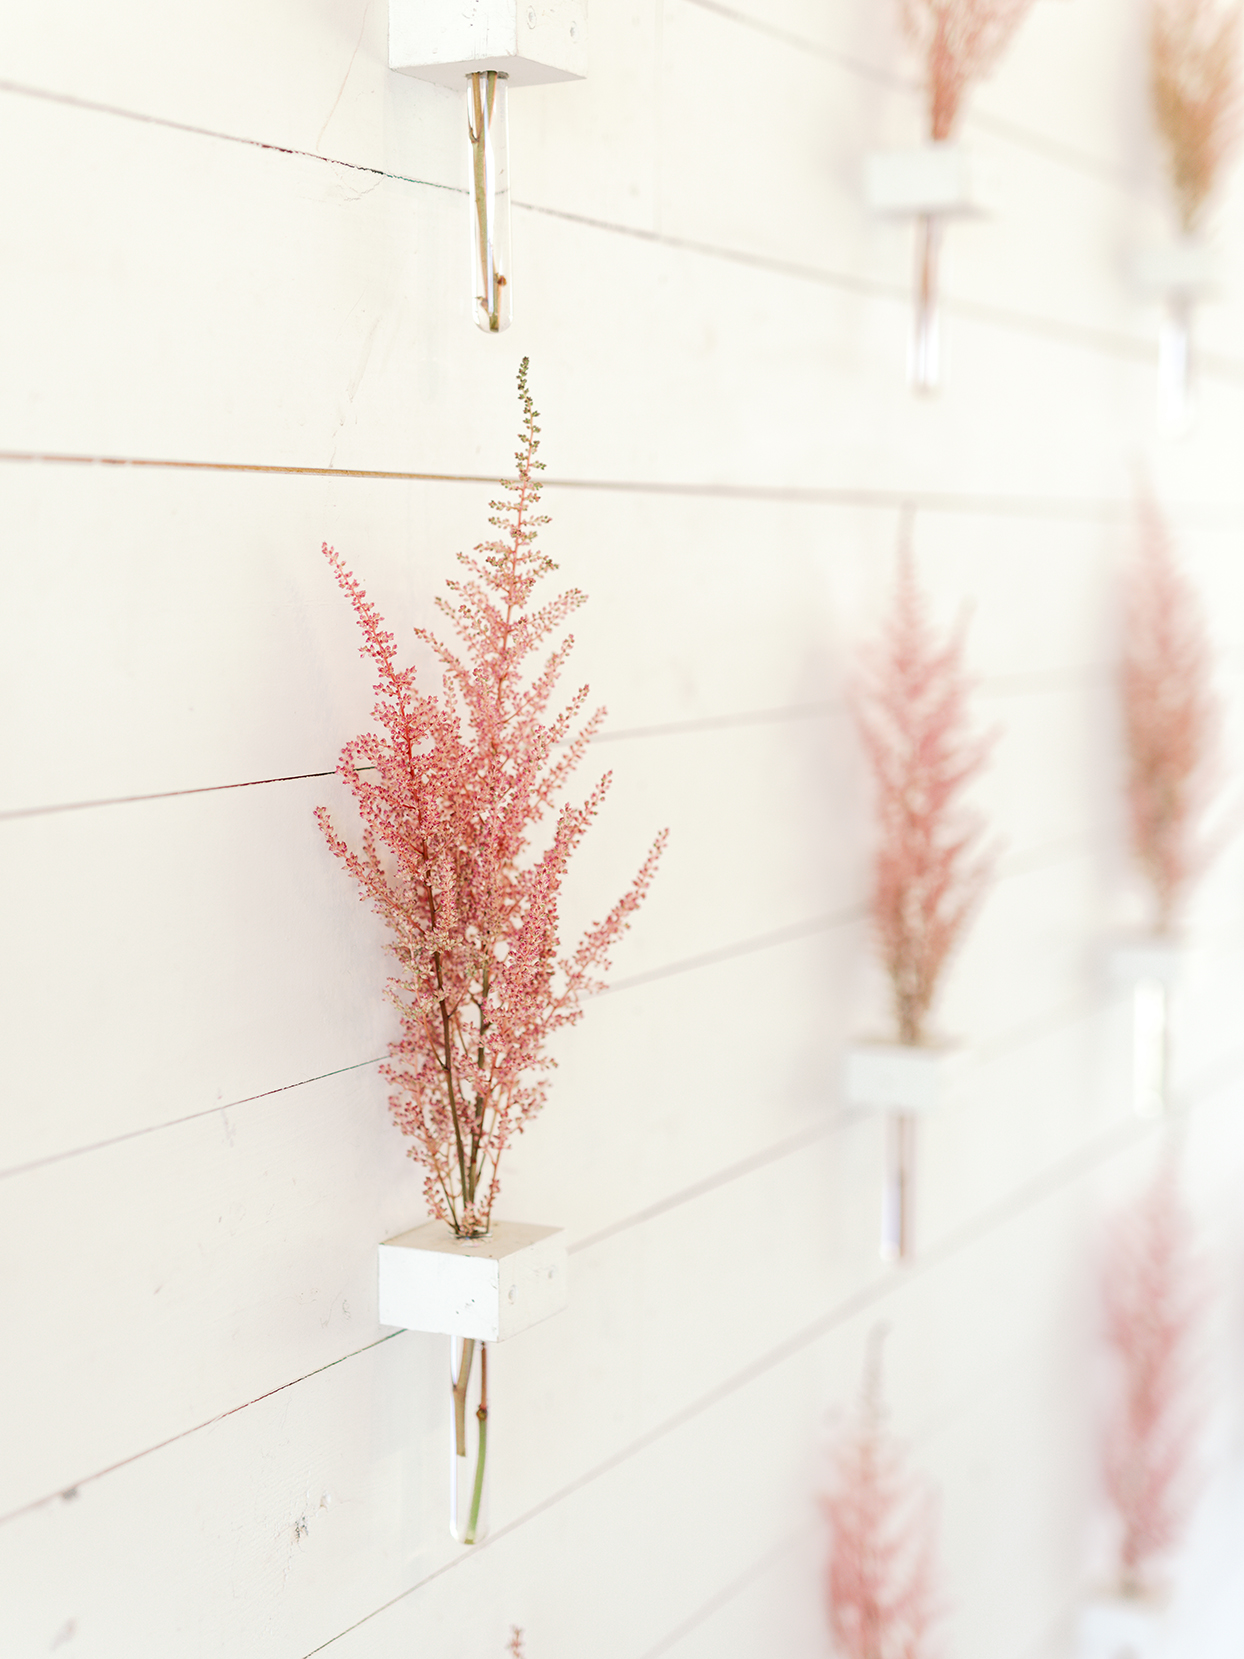 light pink floral decorations against white wooden wall